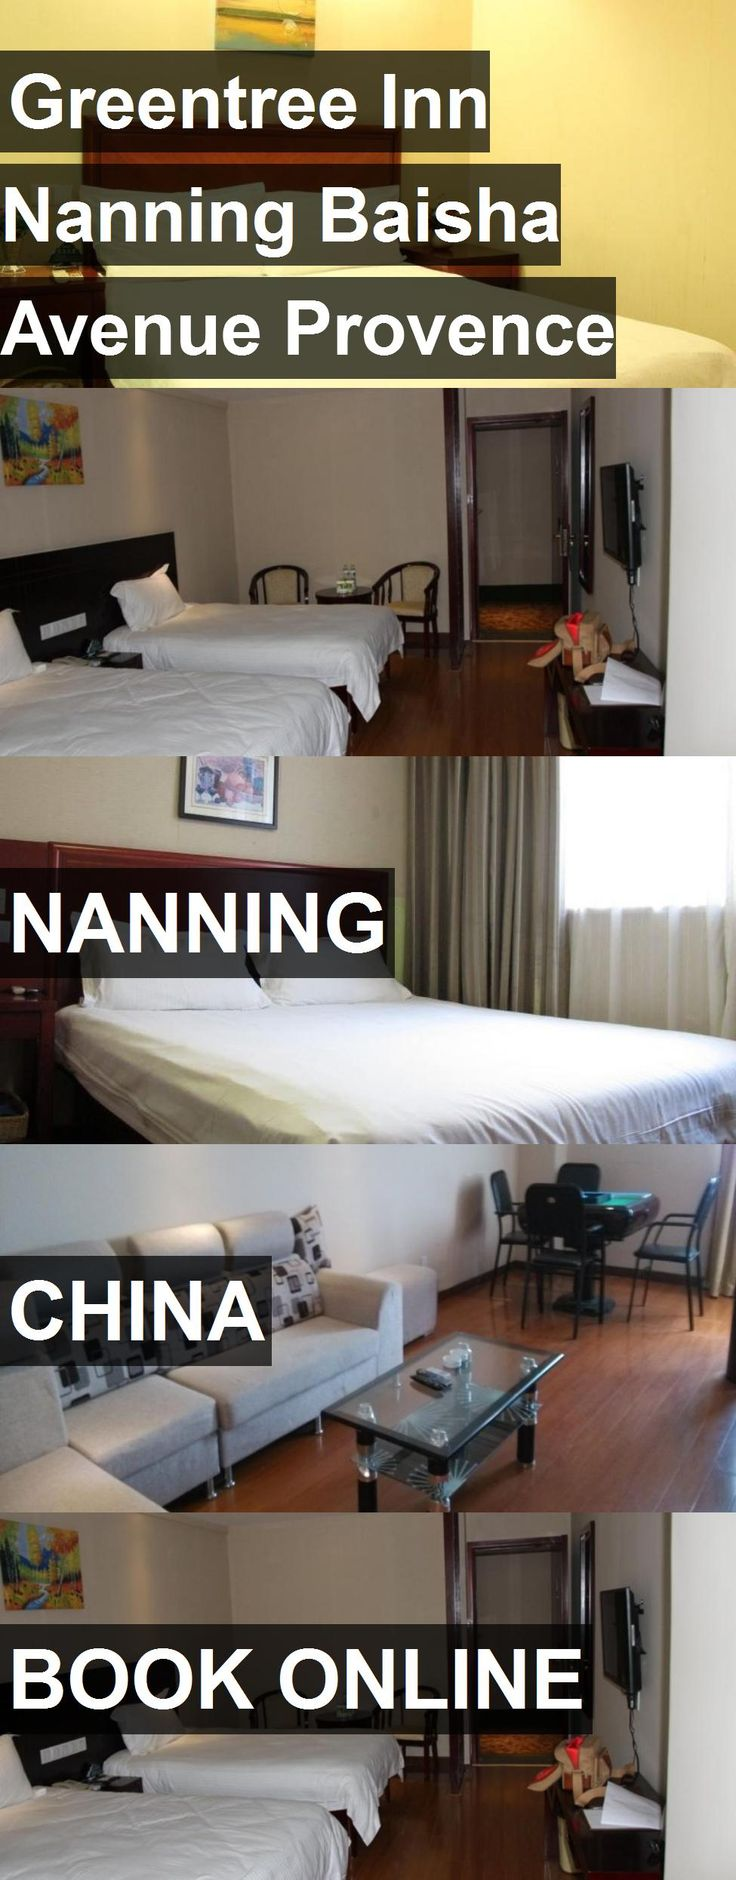 Greentree Inn Nanning Baisha Avenue Provence Business Hotel in Nanning, China. For more information, photos, reviews and best prices please follow the link. #China #Nanning #travel #vacation #hotel